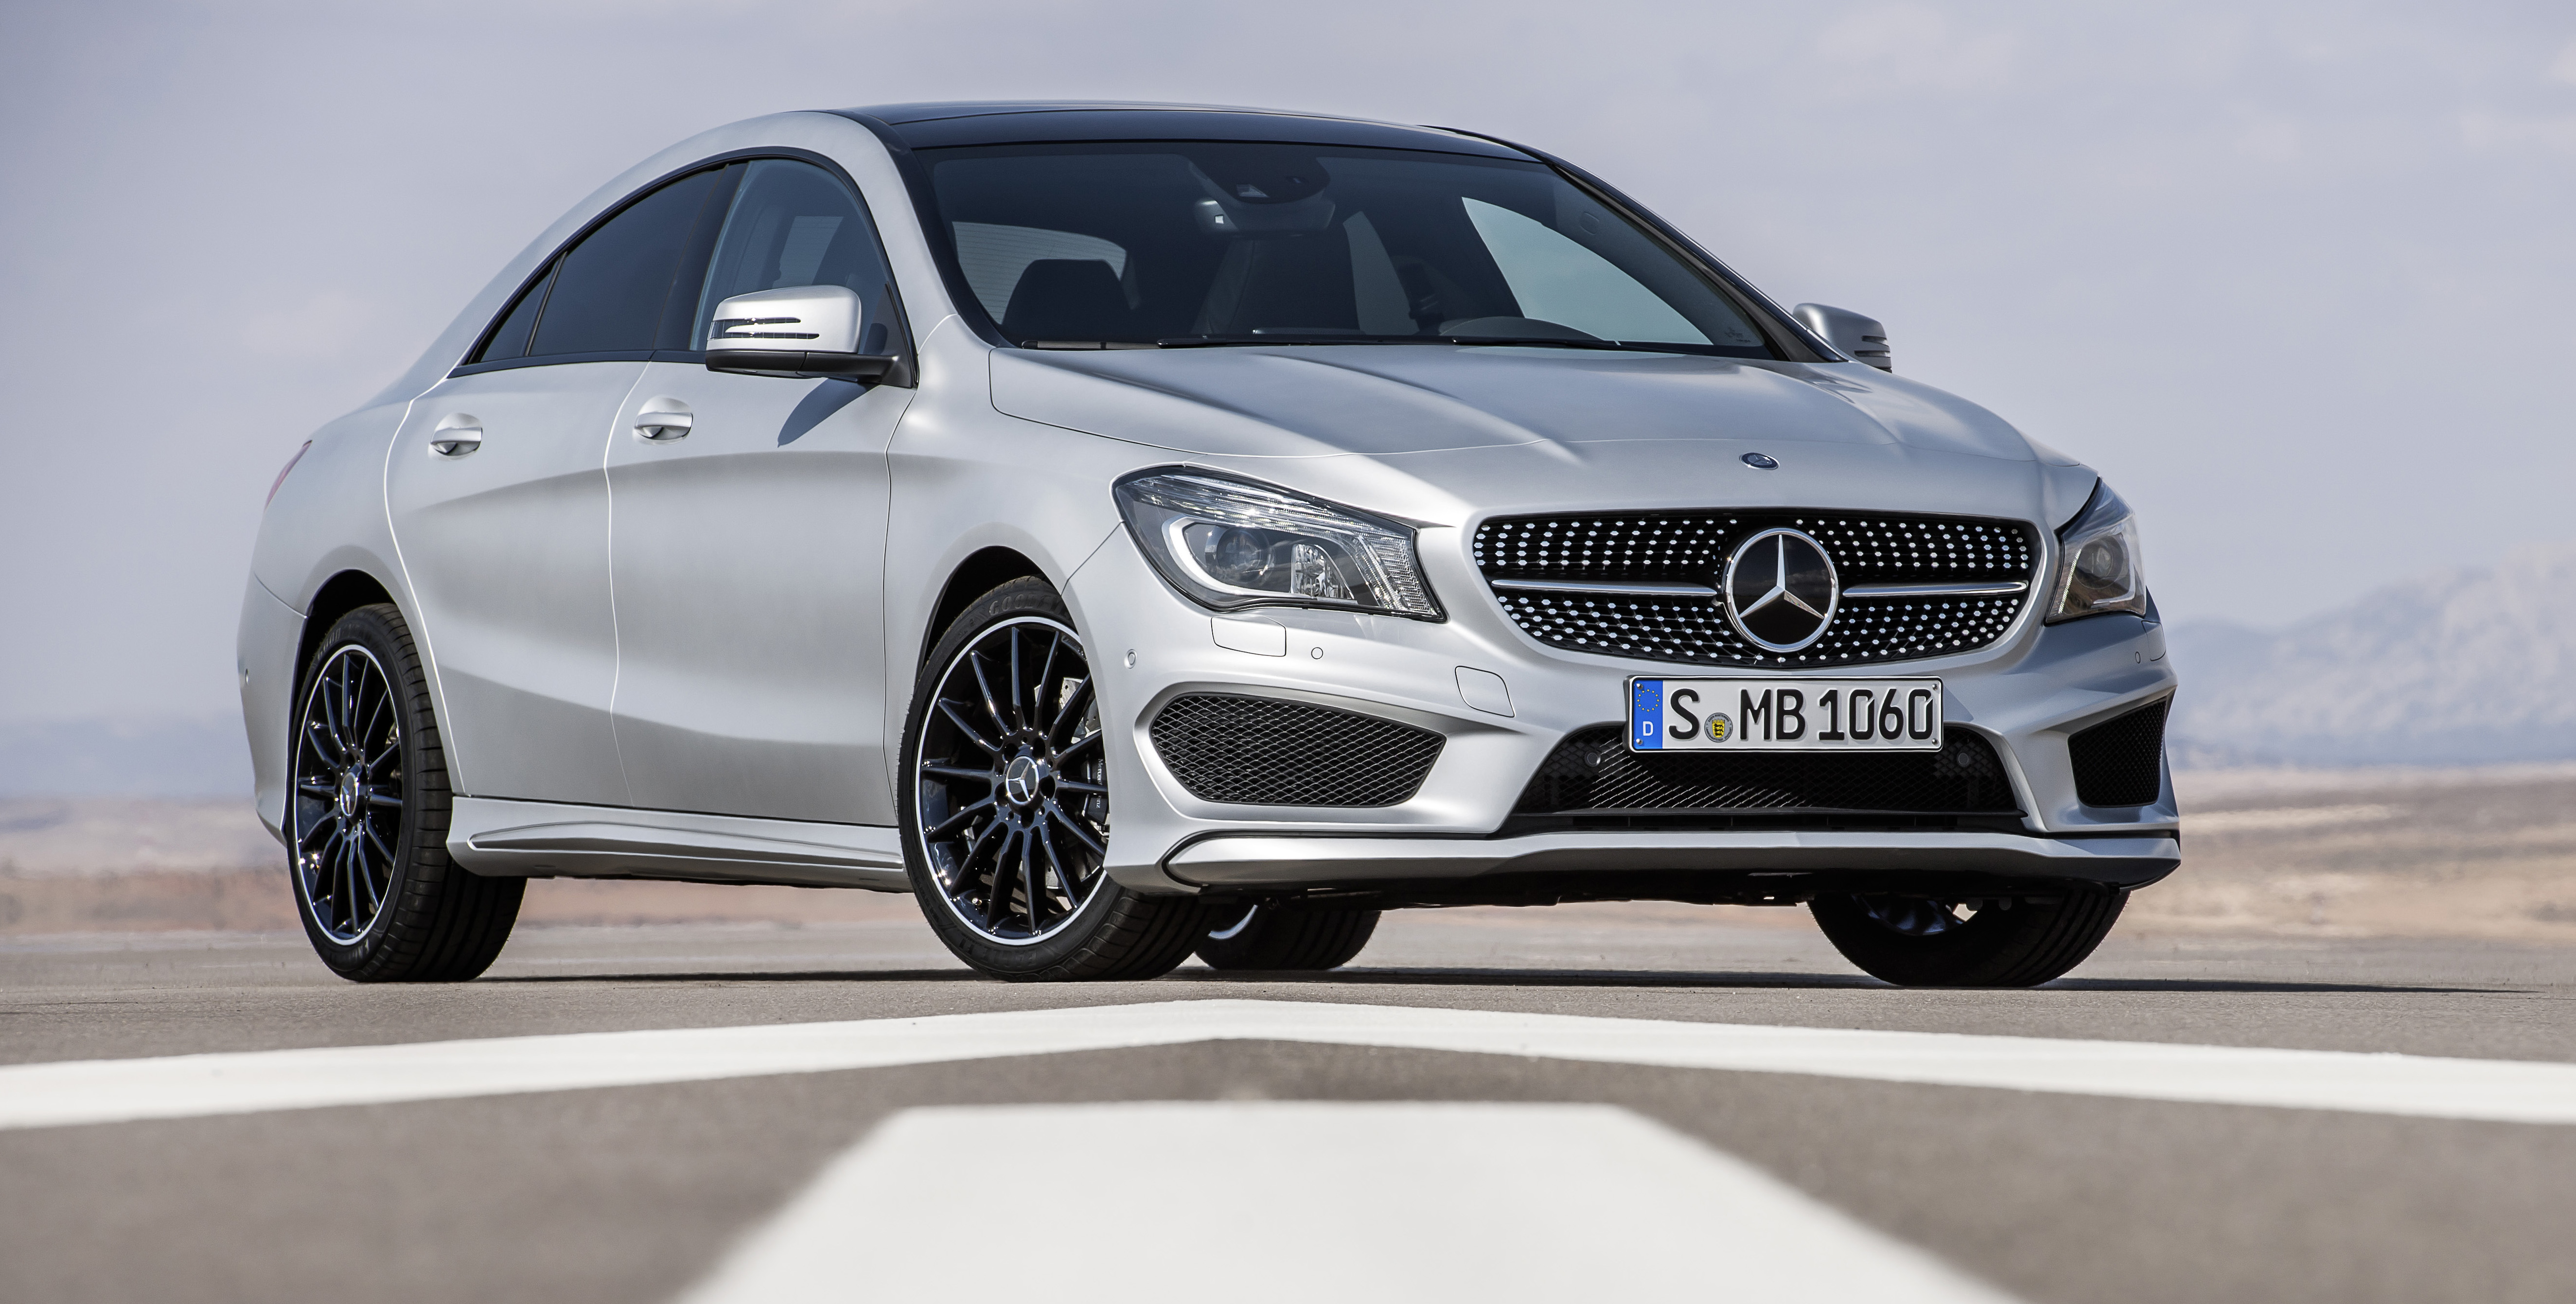 New MercedesBenz CLAClass makes its debut Image 149611